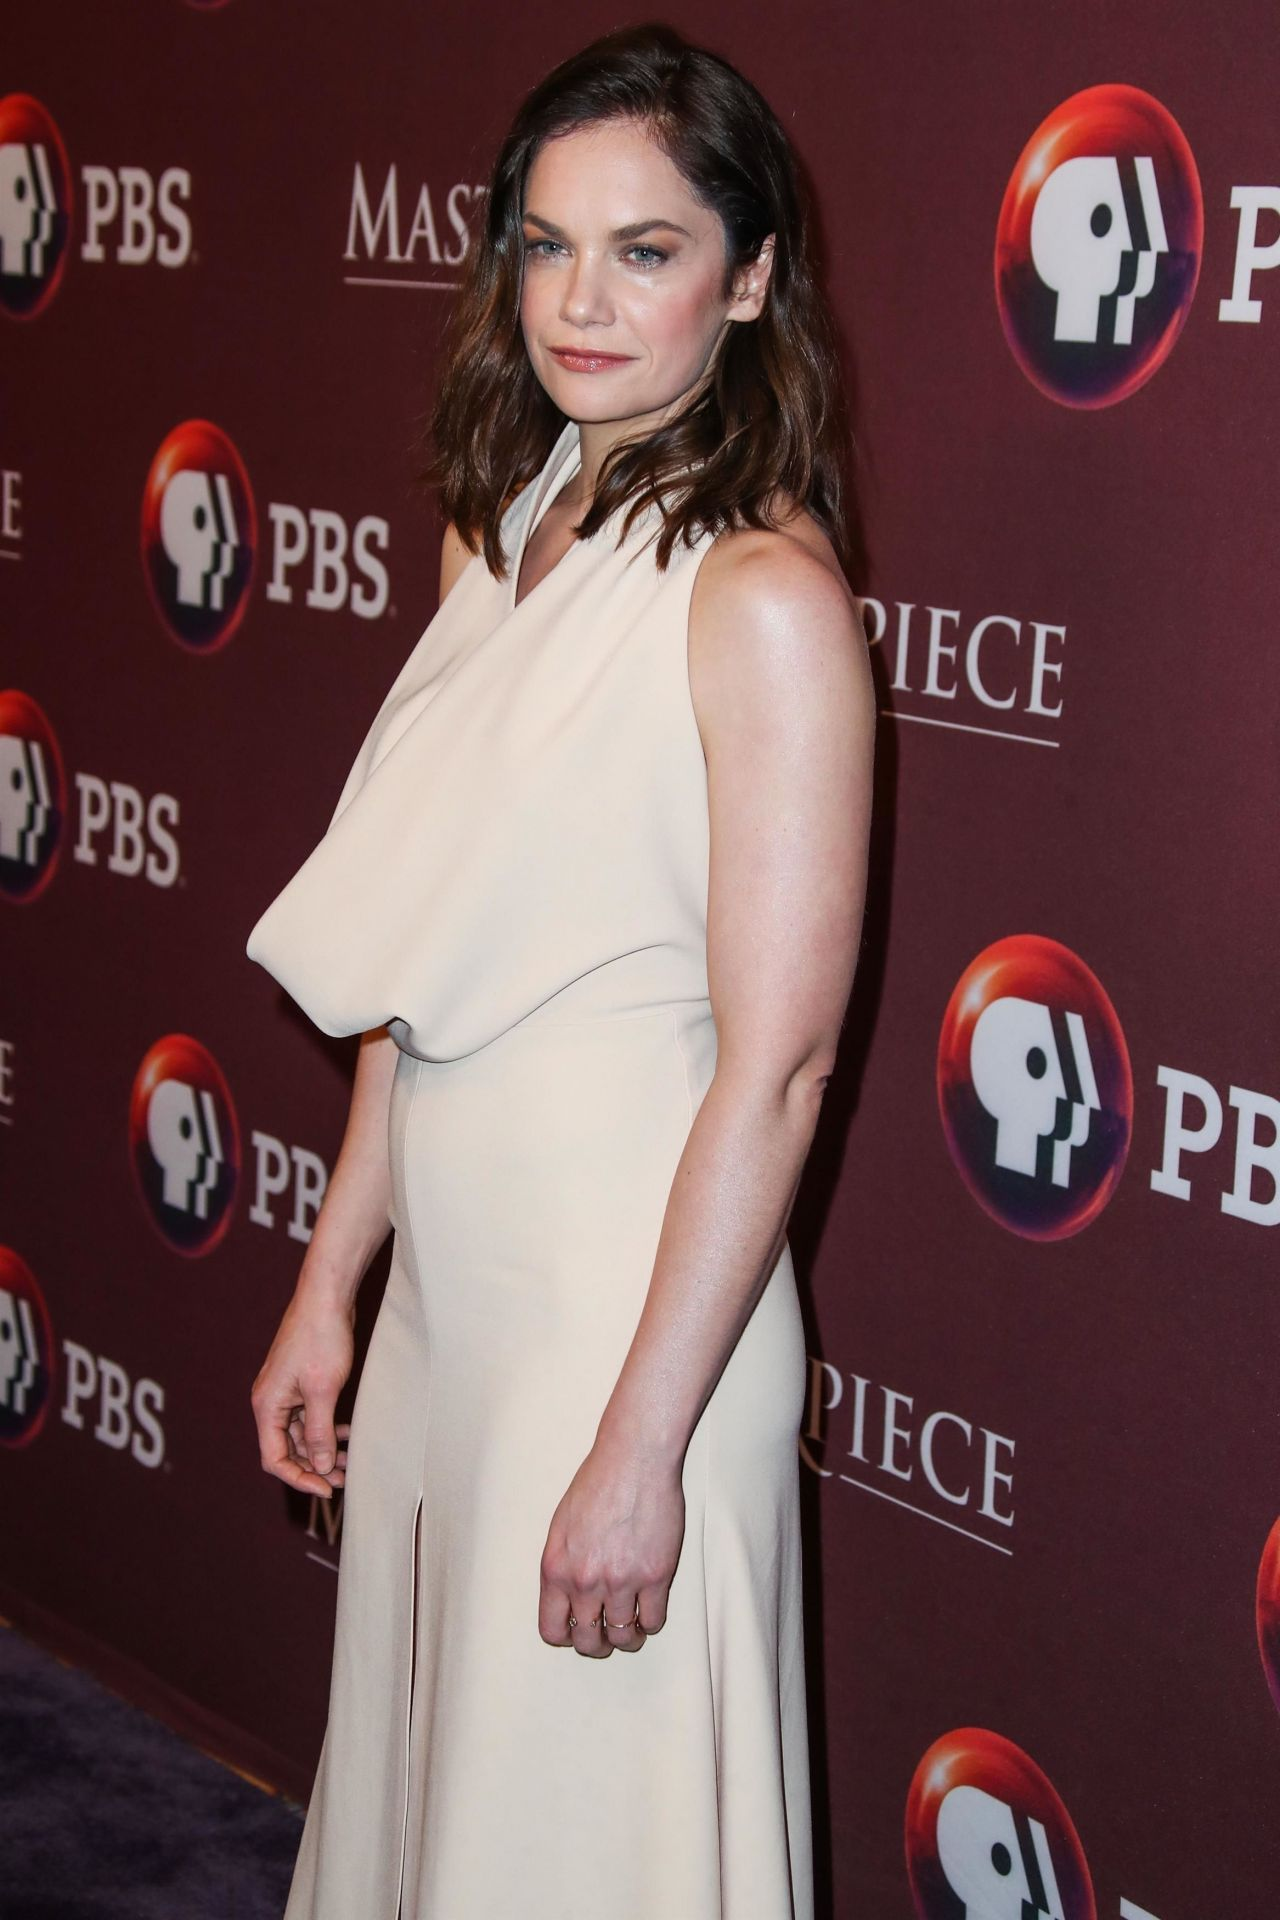 Ruth Wilson Quot Masterpiece Quot Photocall At The 2019 Winter